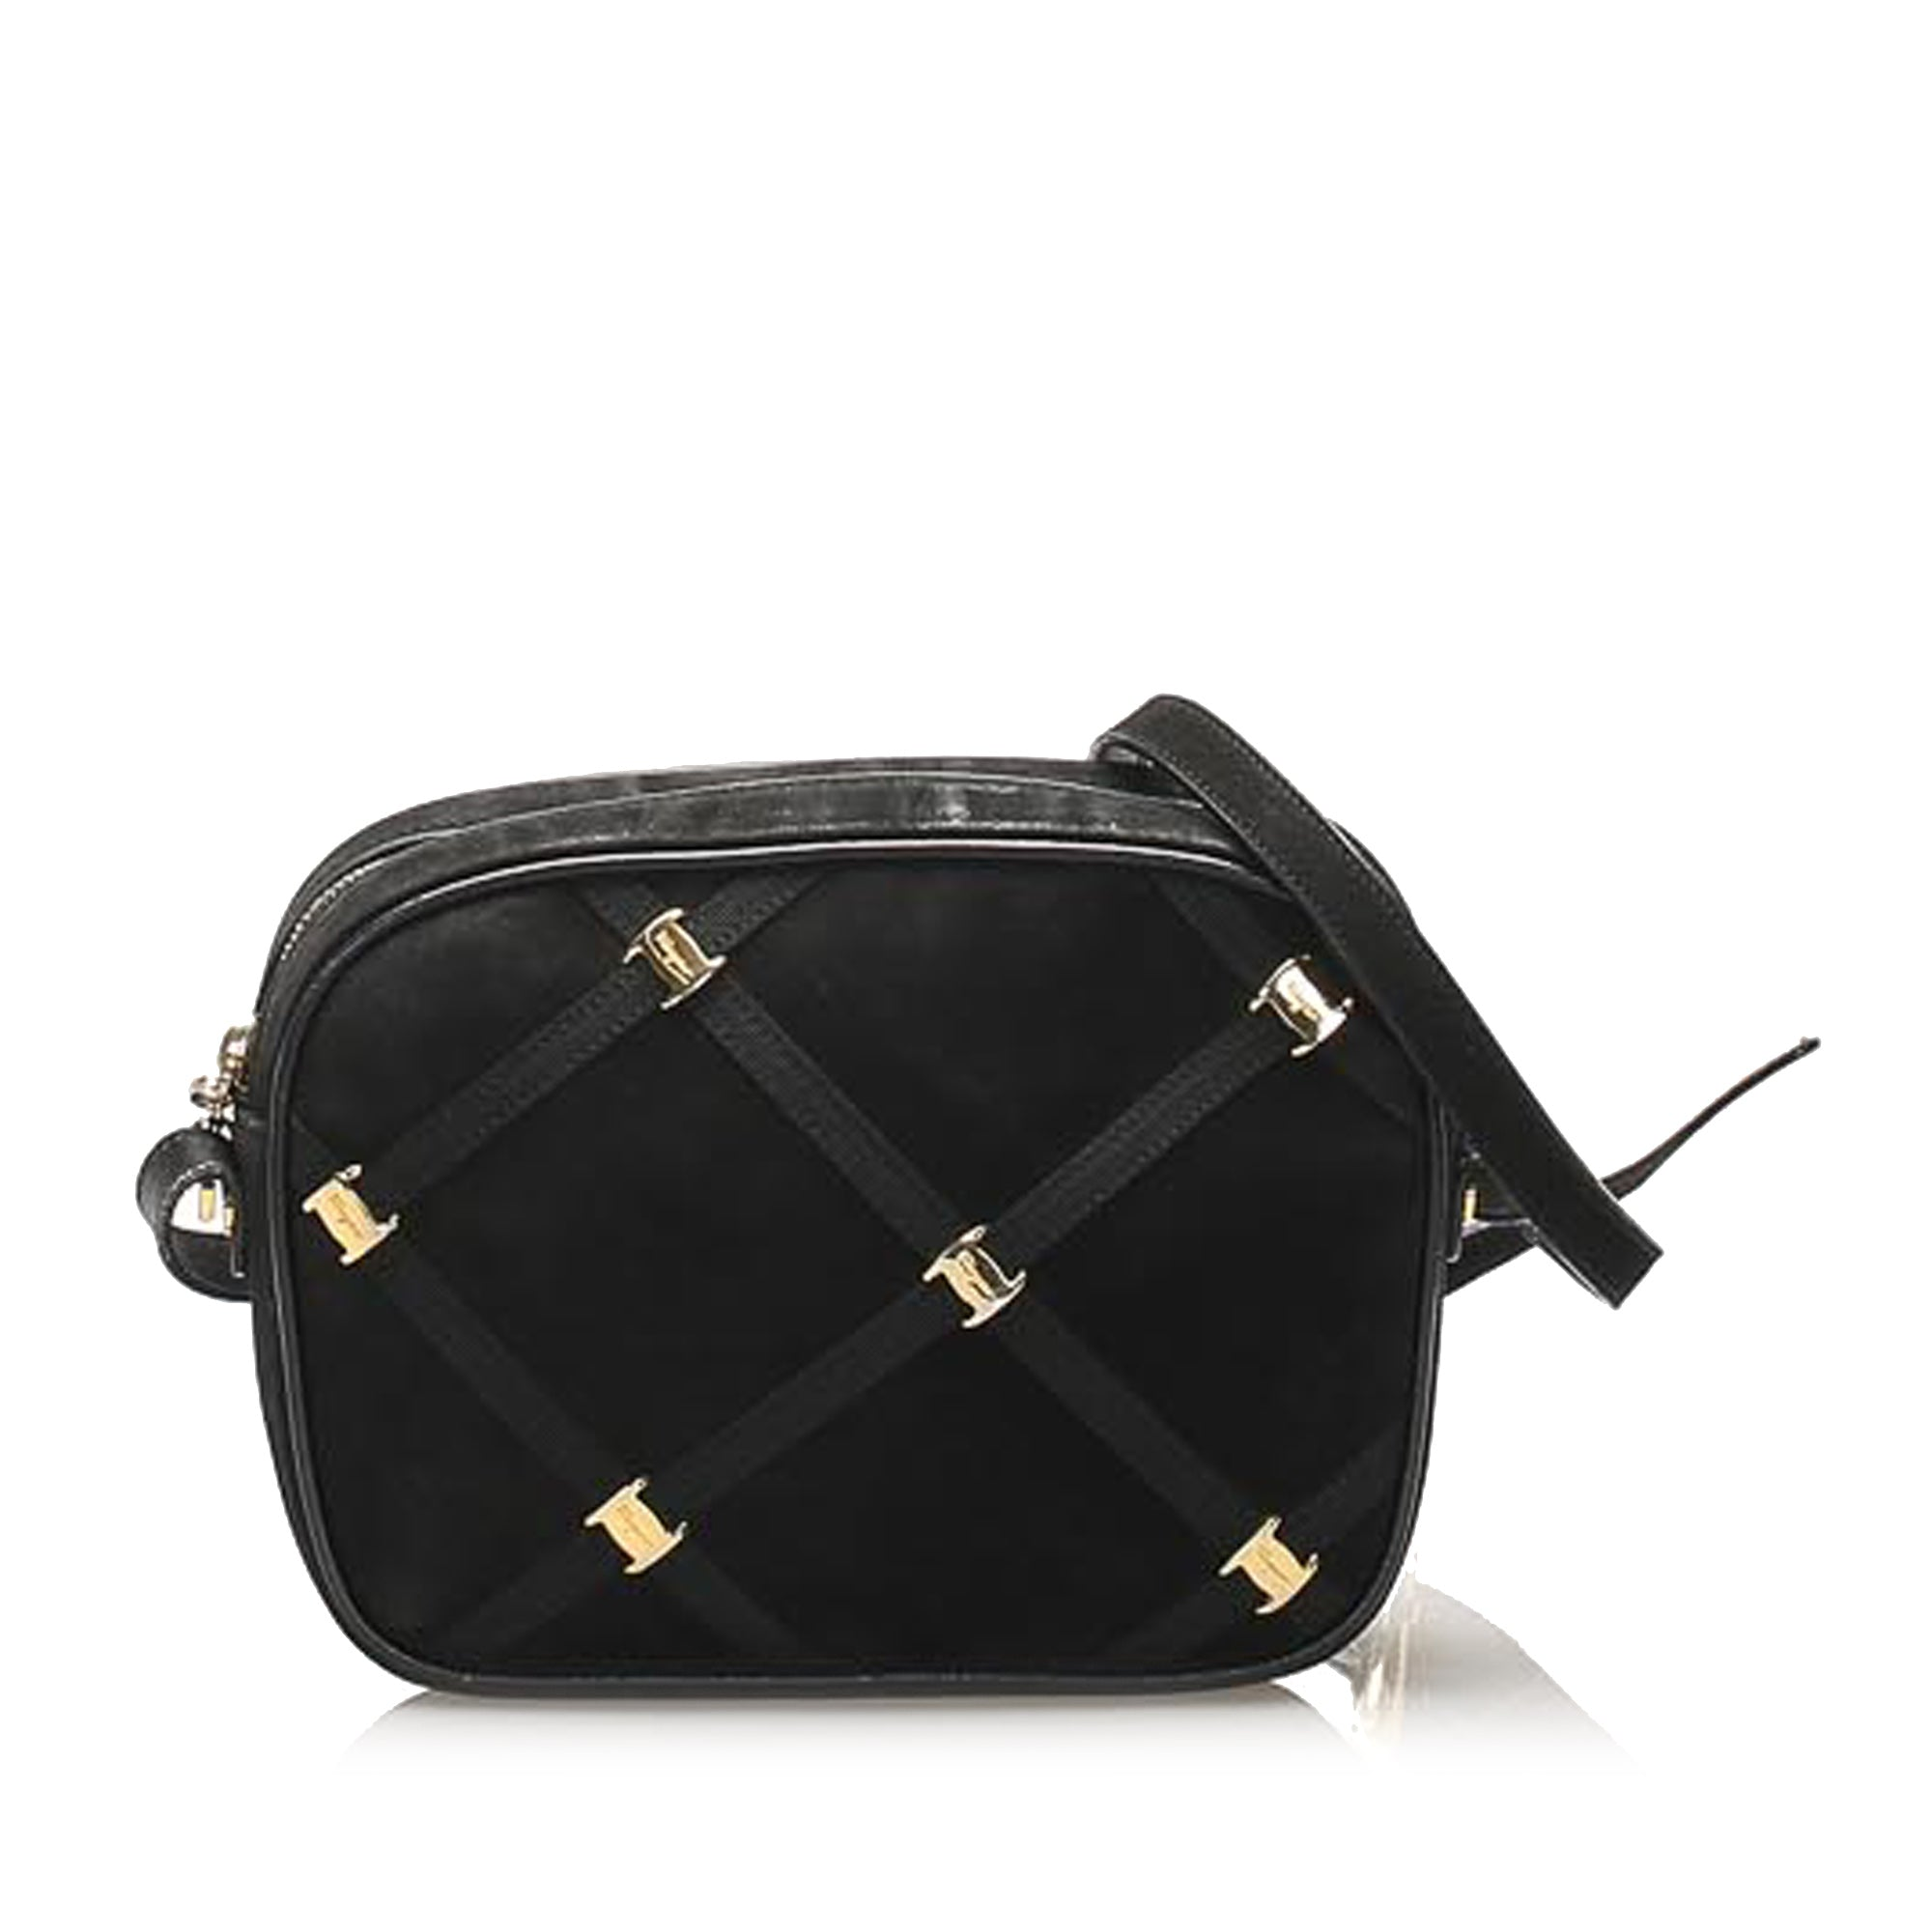 Ferragamo Black Vara Suede Crossbody Bag